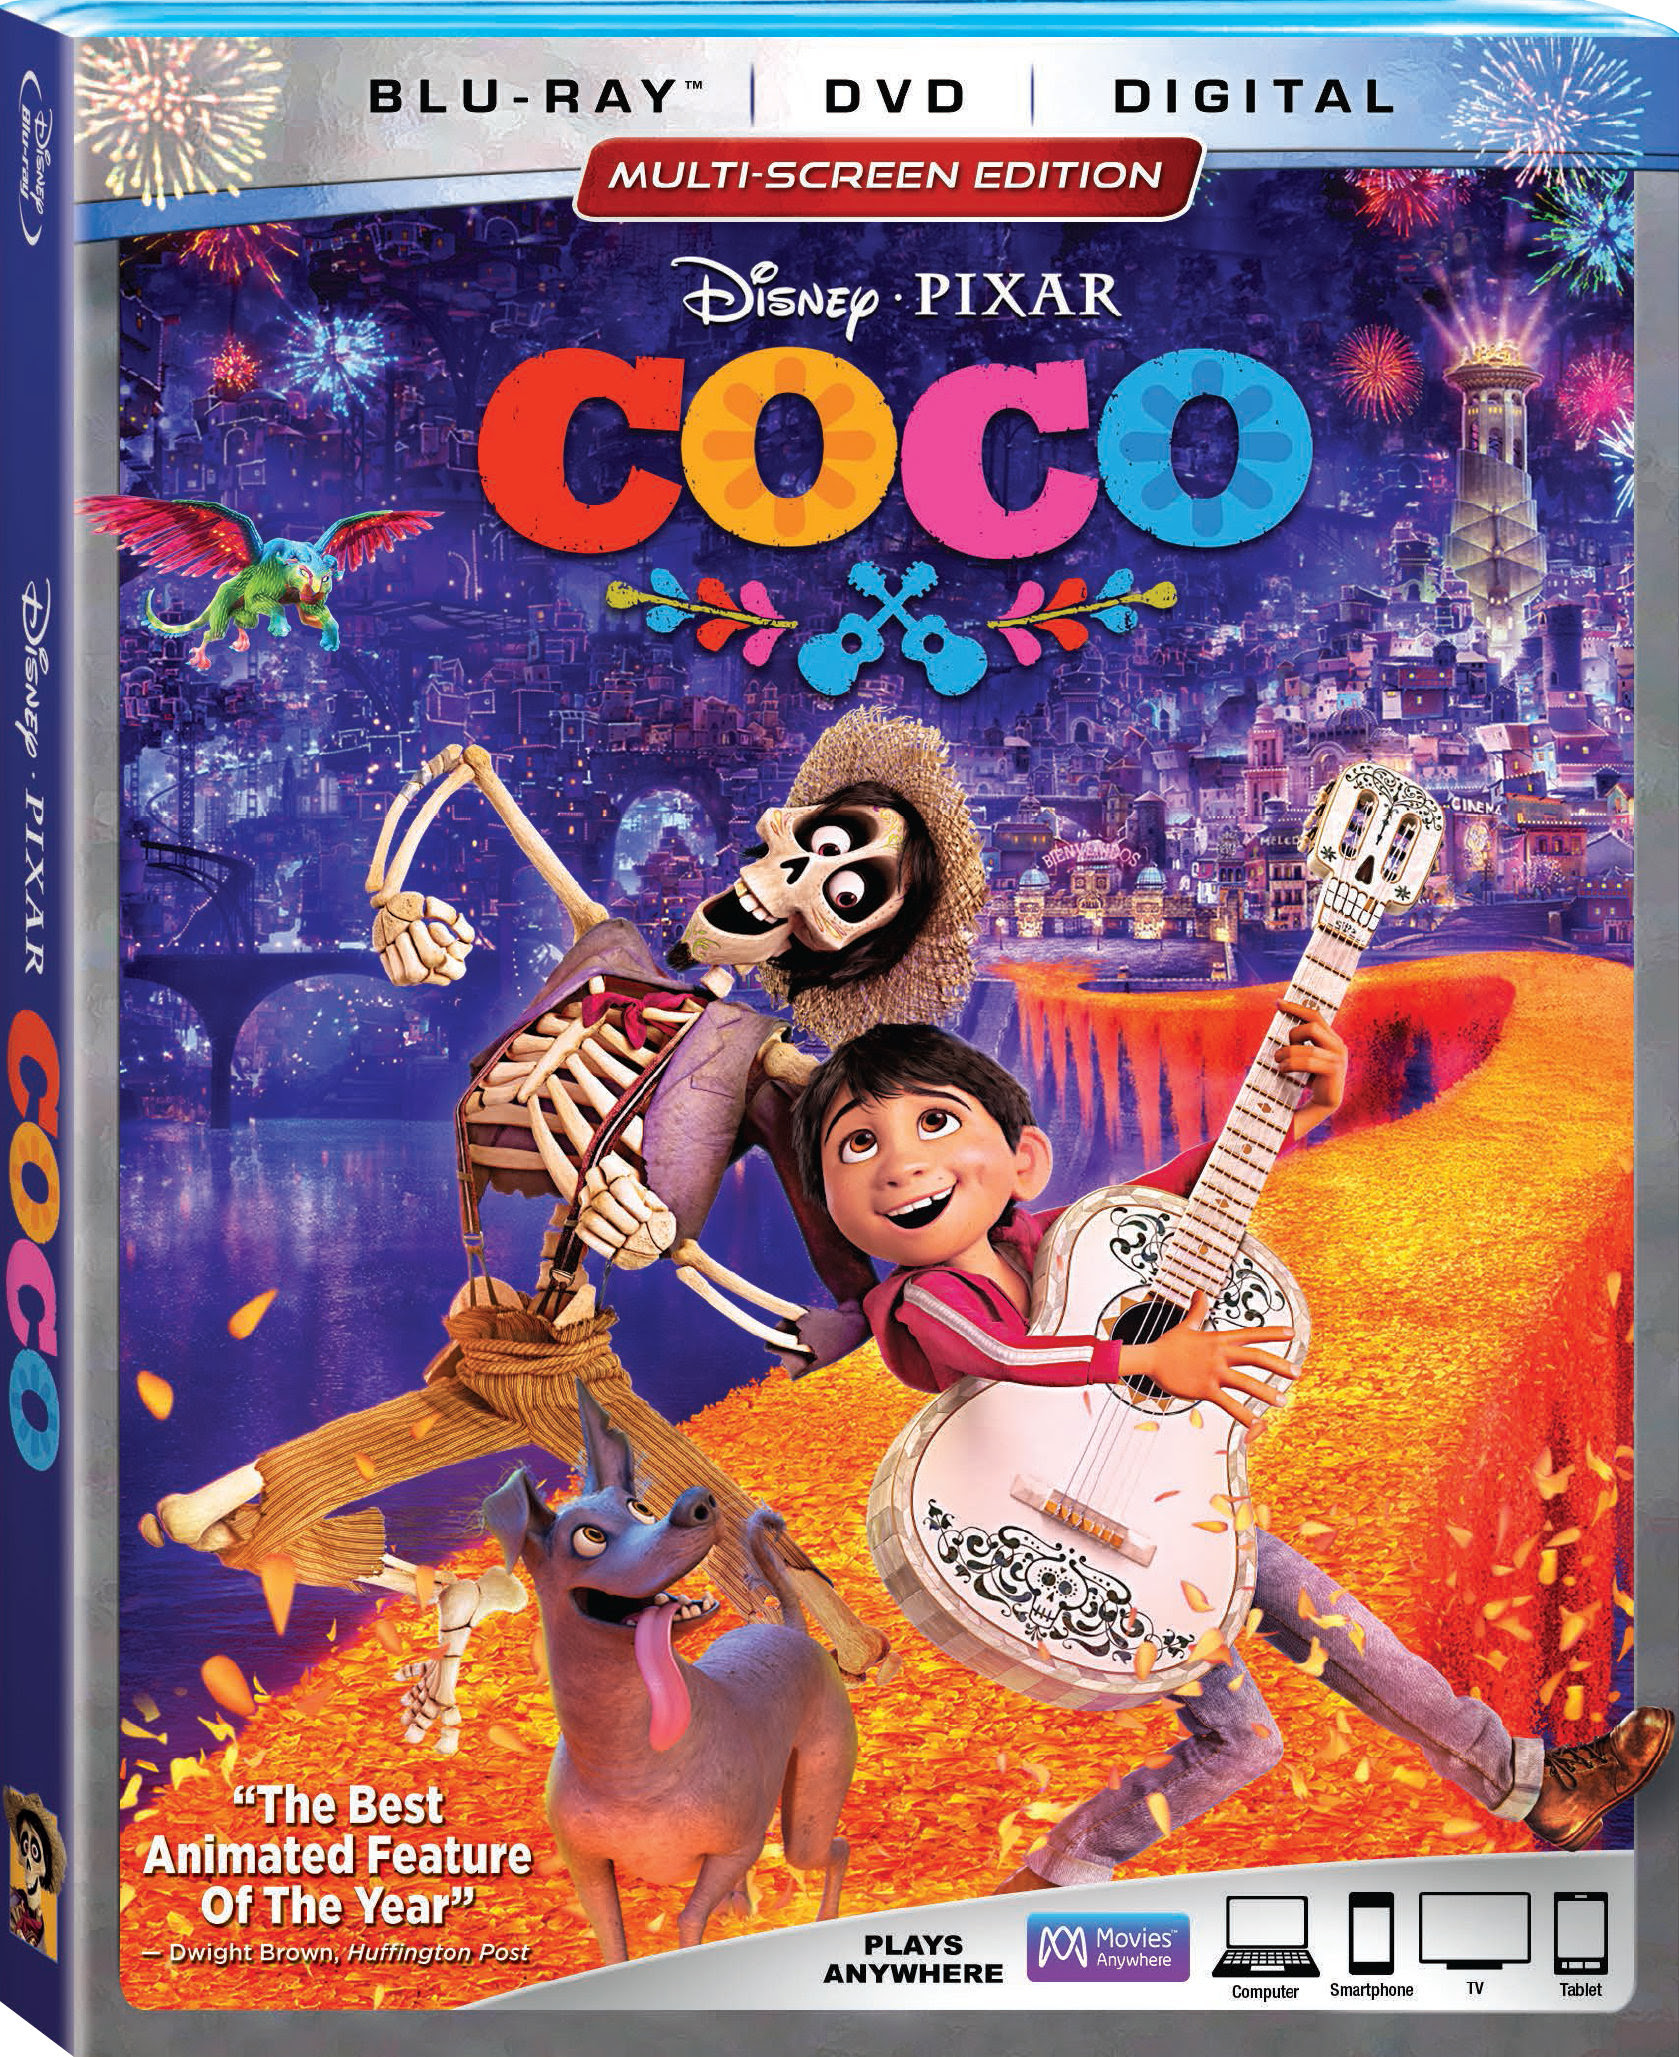 COCO- ACADEMY AWARD WINNER FOR BEST ANIMATION